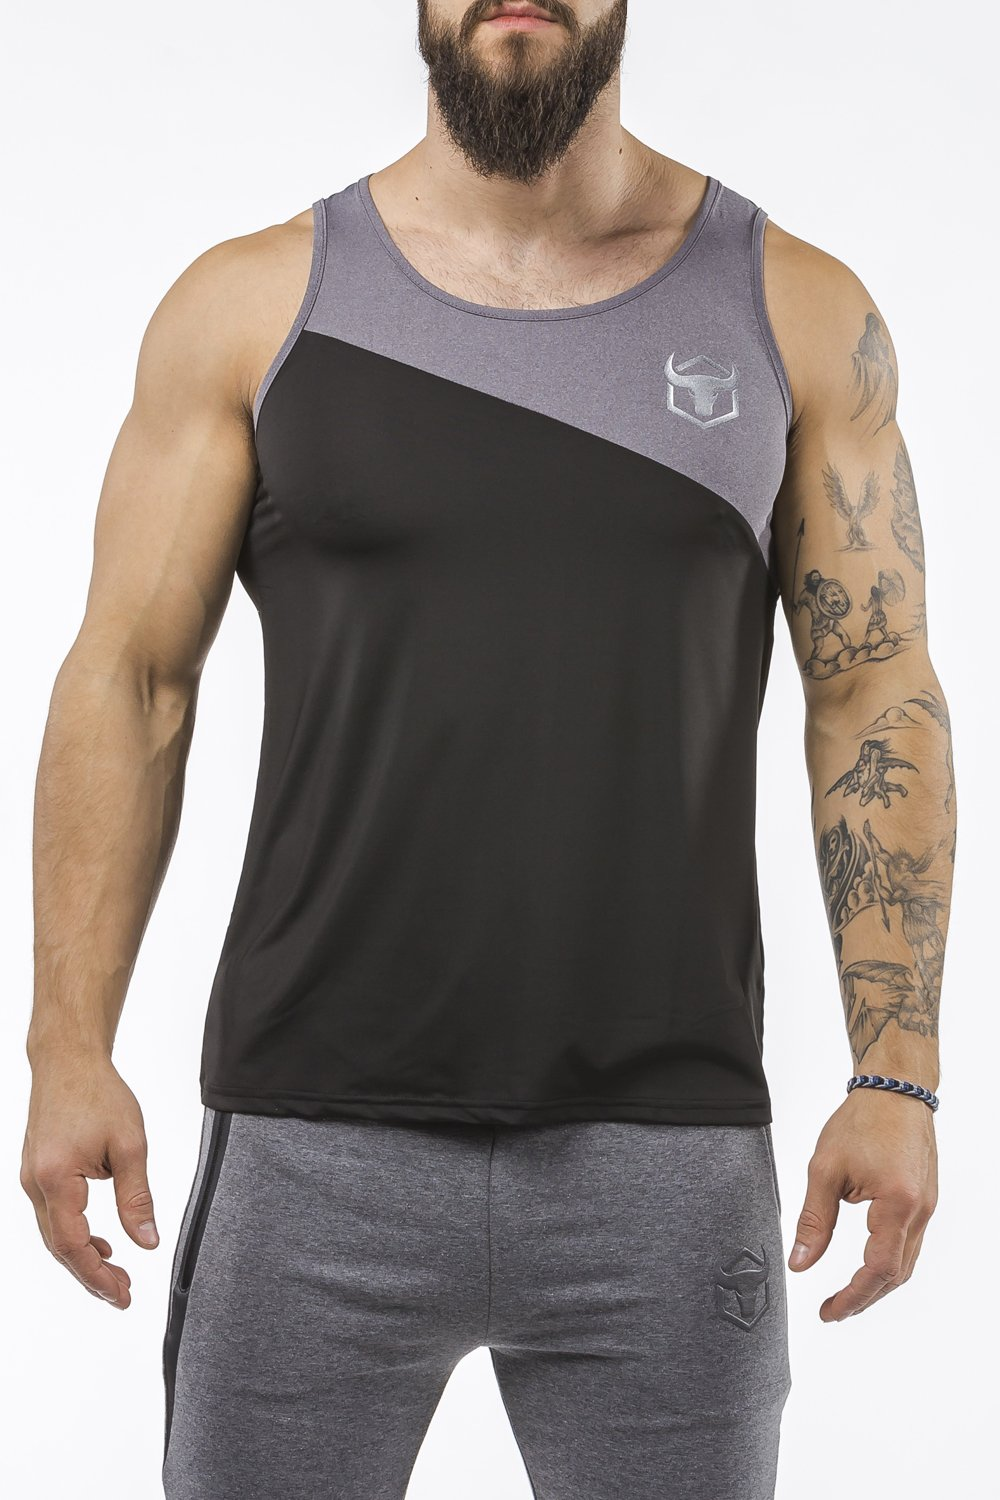 Performance Tank Top - Paneled Quick-Dry Sleeveless Shirt - Sportswear Iron Bull Strength